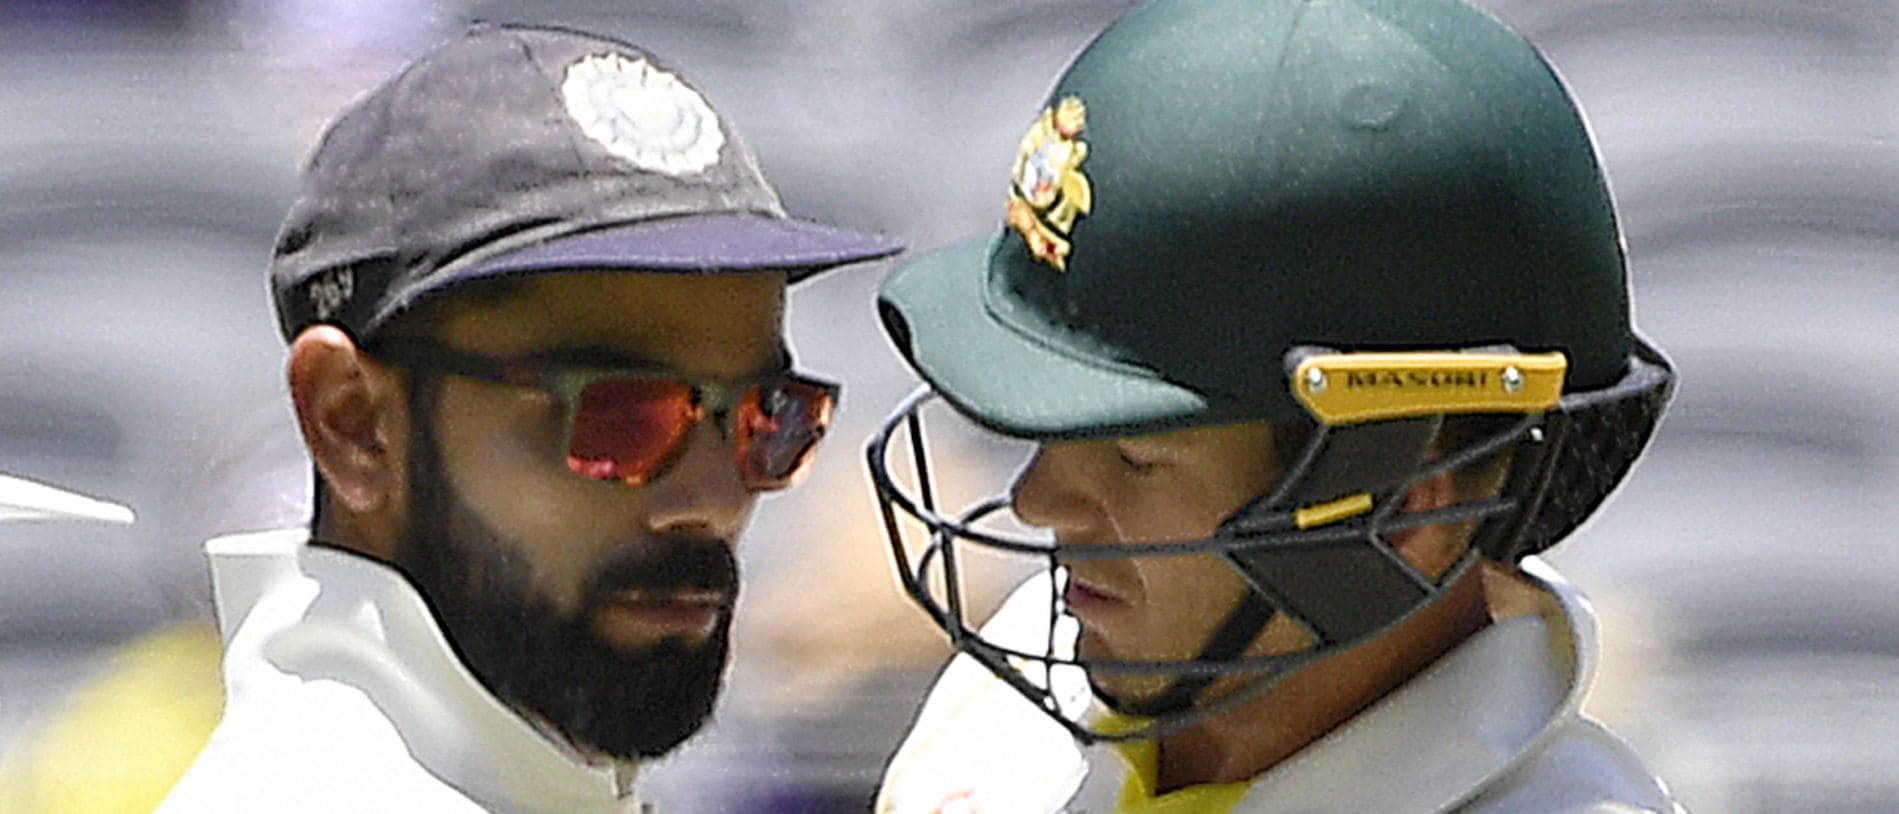 Indian captain Virat Kohli (left) and Australian captain Australian captain Tim Paine touch after Paine ran a single during play on day four of the second Test match between Australia and India at Perth Stadium in Perth, Monday,  December 17,  2018.  (AAP Image/Dave Hunt) NO ARCHIVING, EDITORIAL USE ONLY, IMAGES TO BE USED FOR NEWS REPORTING PURPOSES ONLY, NO COMMERCIAL USE WHATSOEVER, NO USE IN BOOKS WITHOUT PRIOR WRITTEN CONSENT FROM AAP